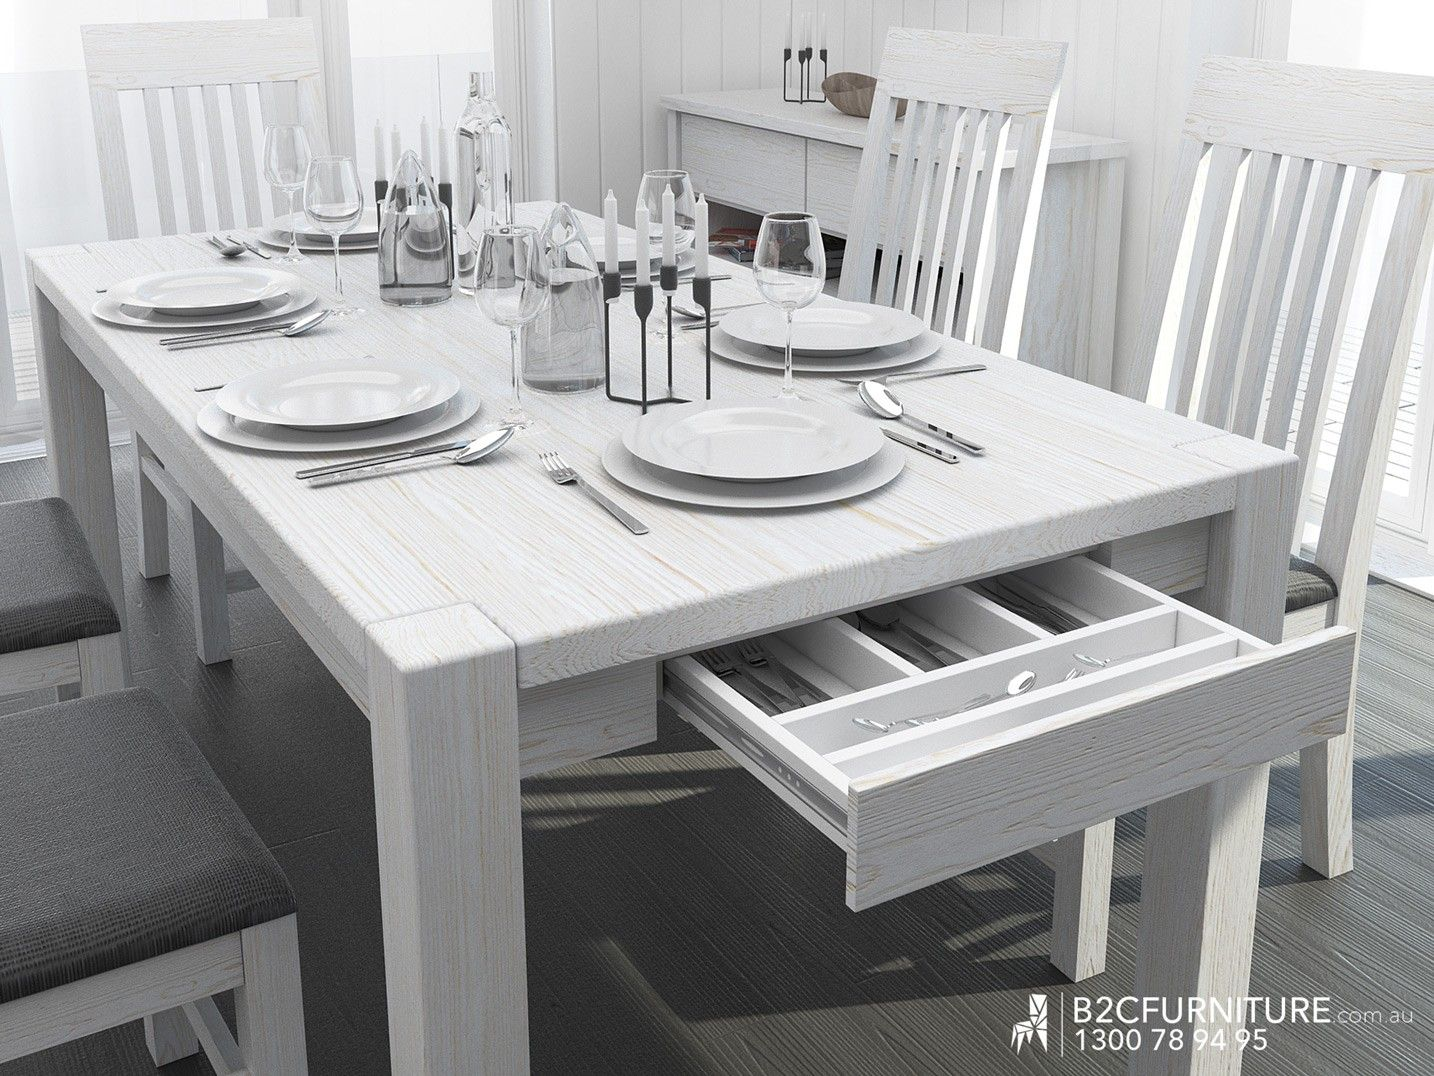 Modern Solid Timber Dining Tables Finished In Whitewash. Buy Factory Direct  U0026 Save Off RRP. Buy Online Or Visit Our Furniture Stores Dandenong Melbourne